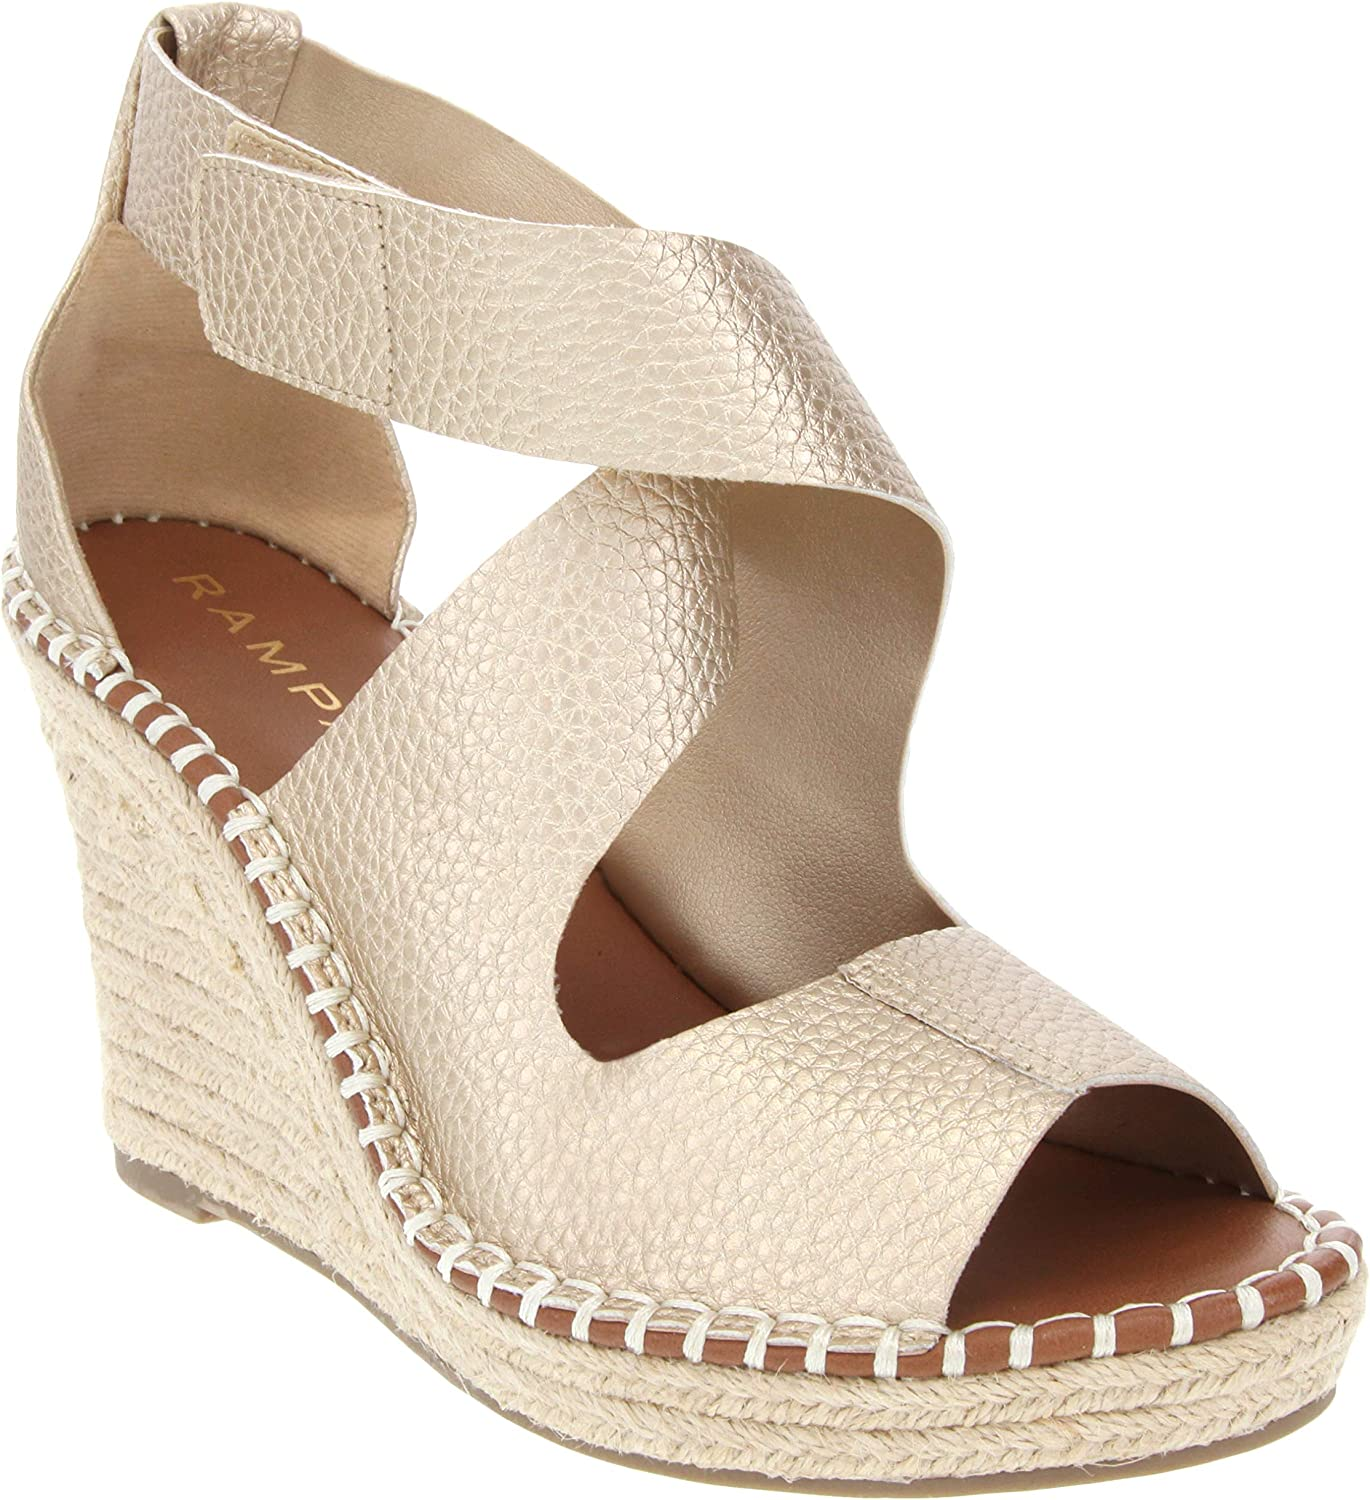 Rampage Women's Holmes Espadrille Wedge Sandals with Criss Cross Strap and Adjustable Closure